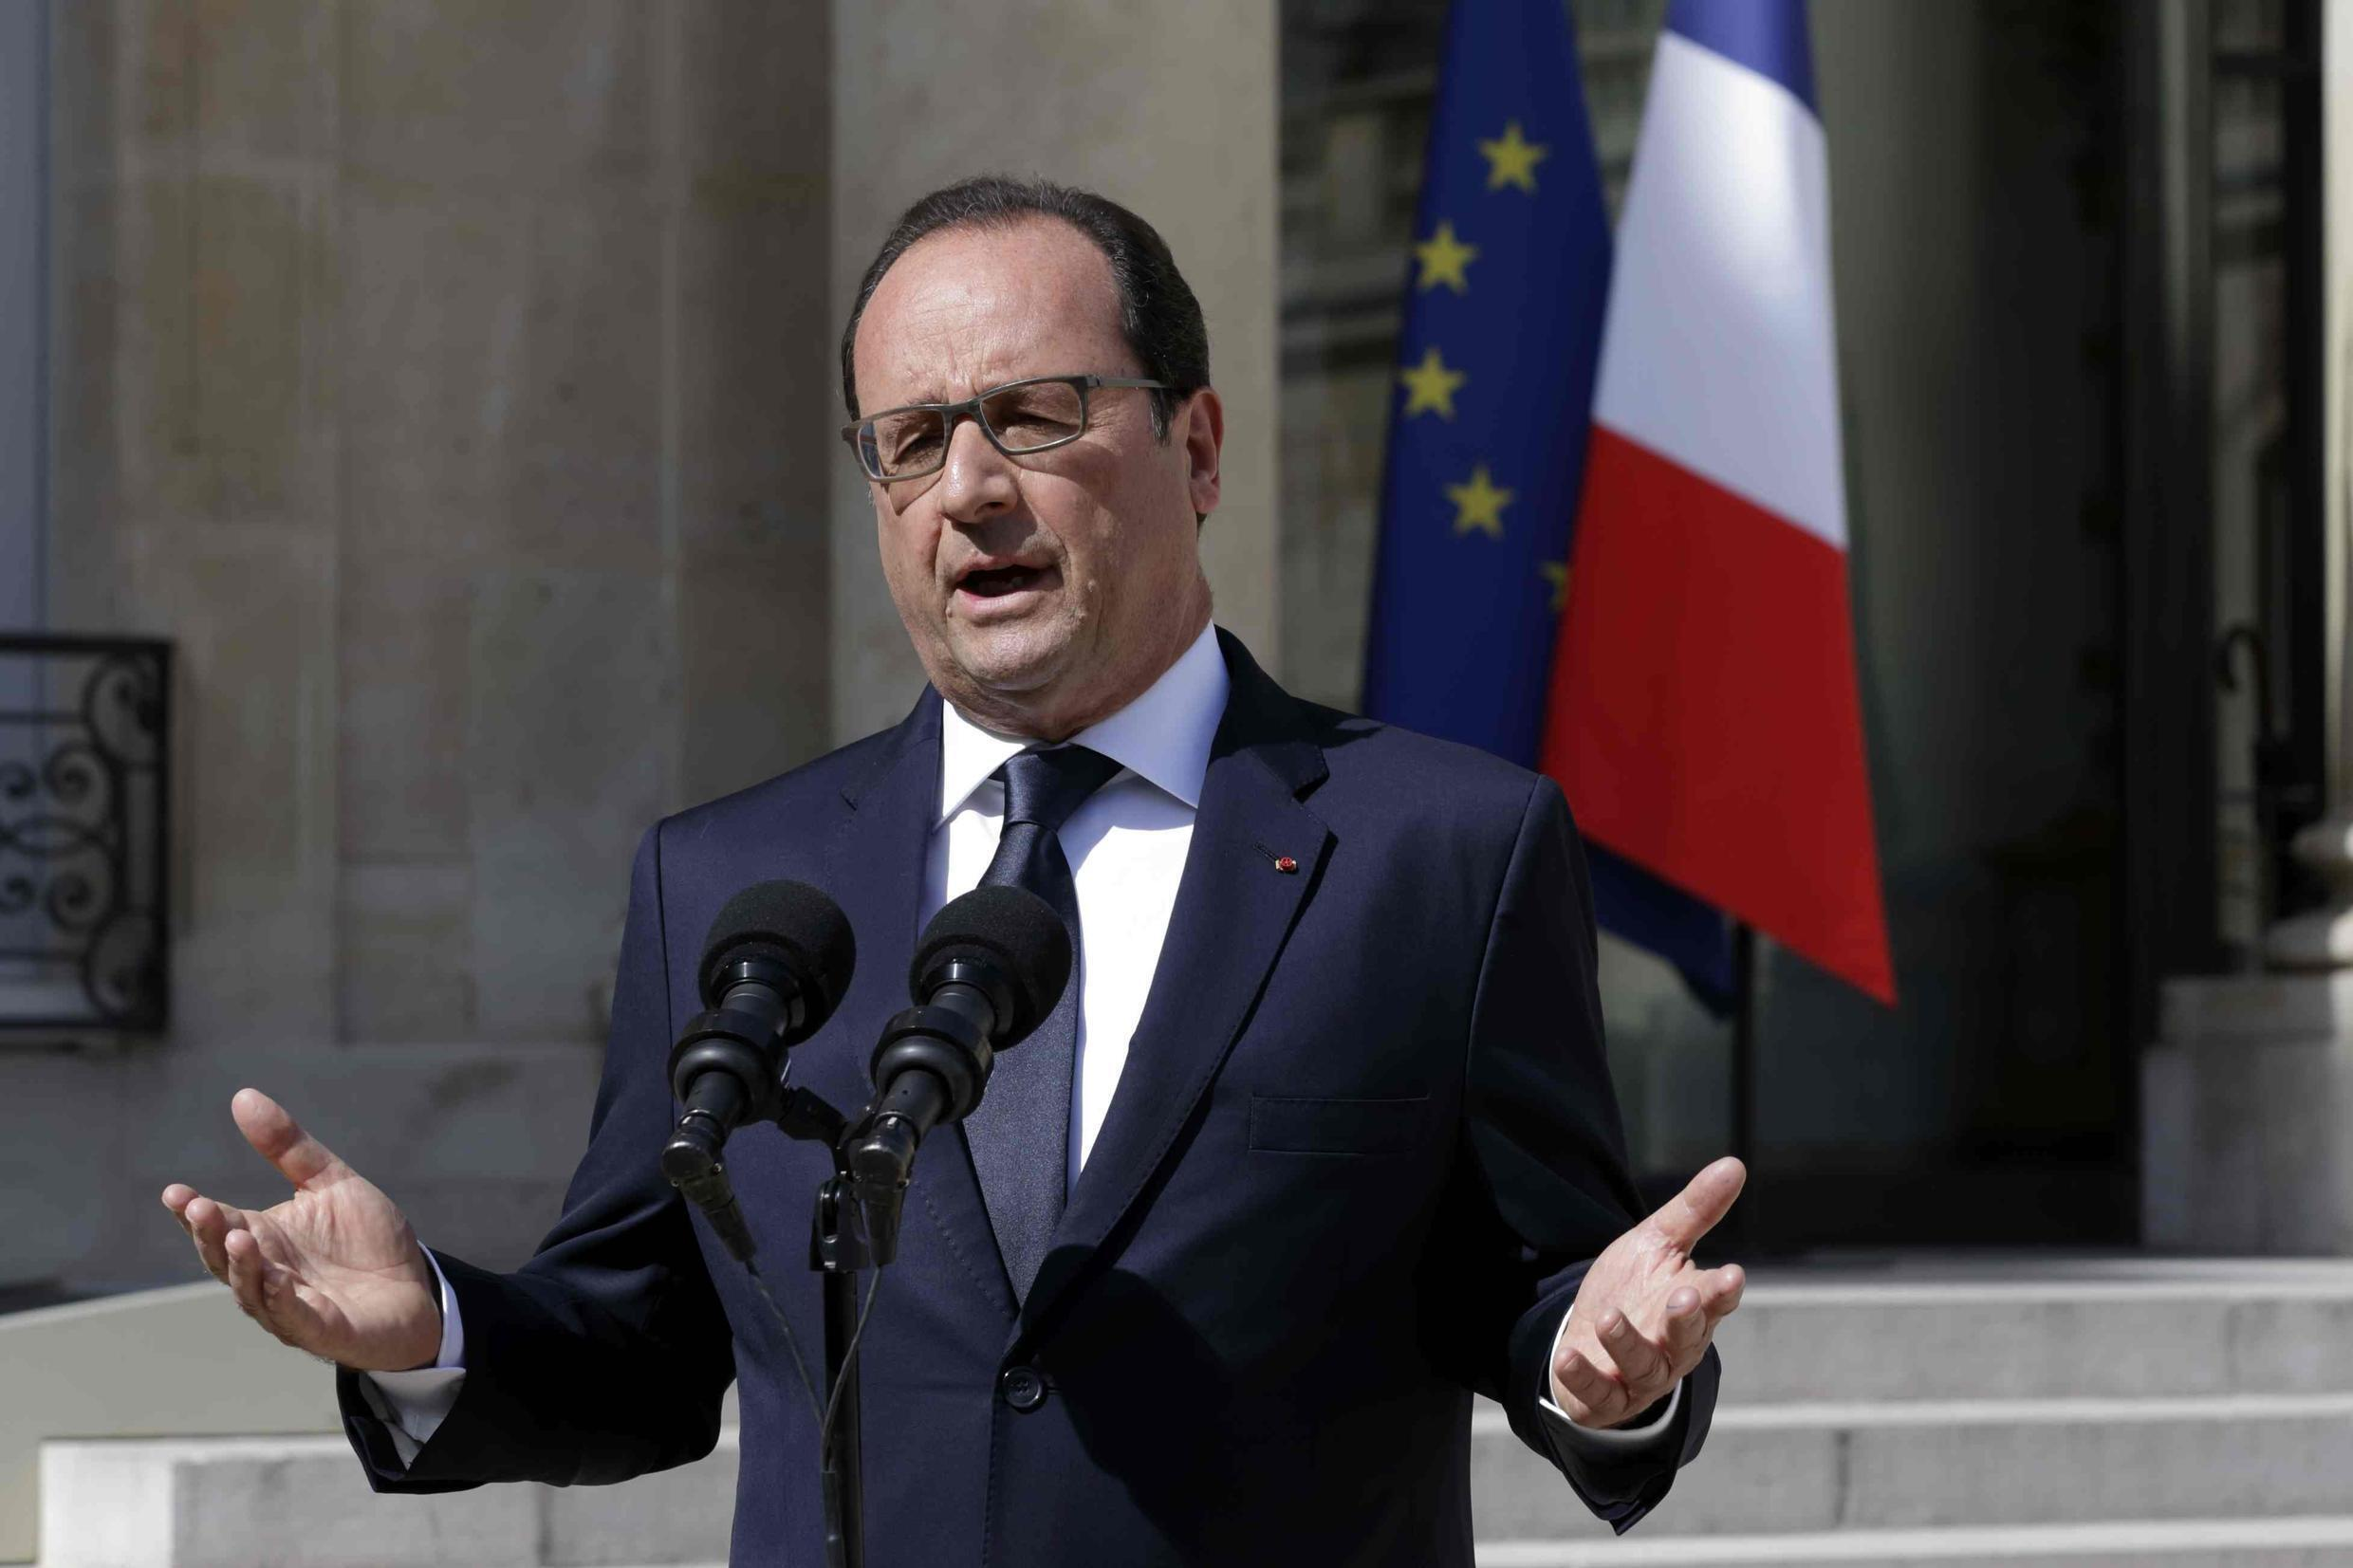 French President François Hollande delivers a statement after holding a council meeting on Greece at the Elysee Palace in Paris, France.